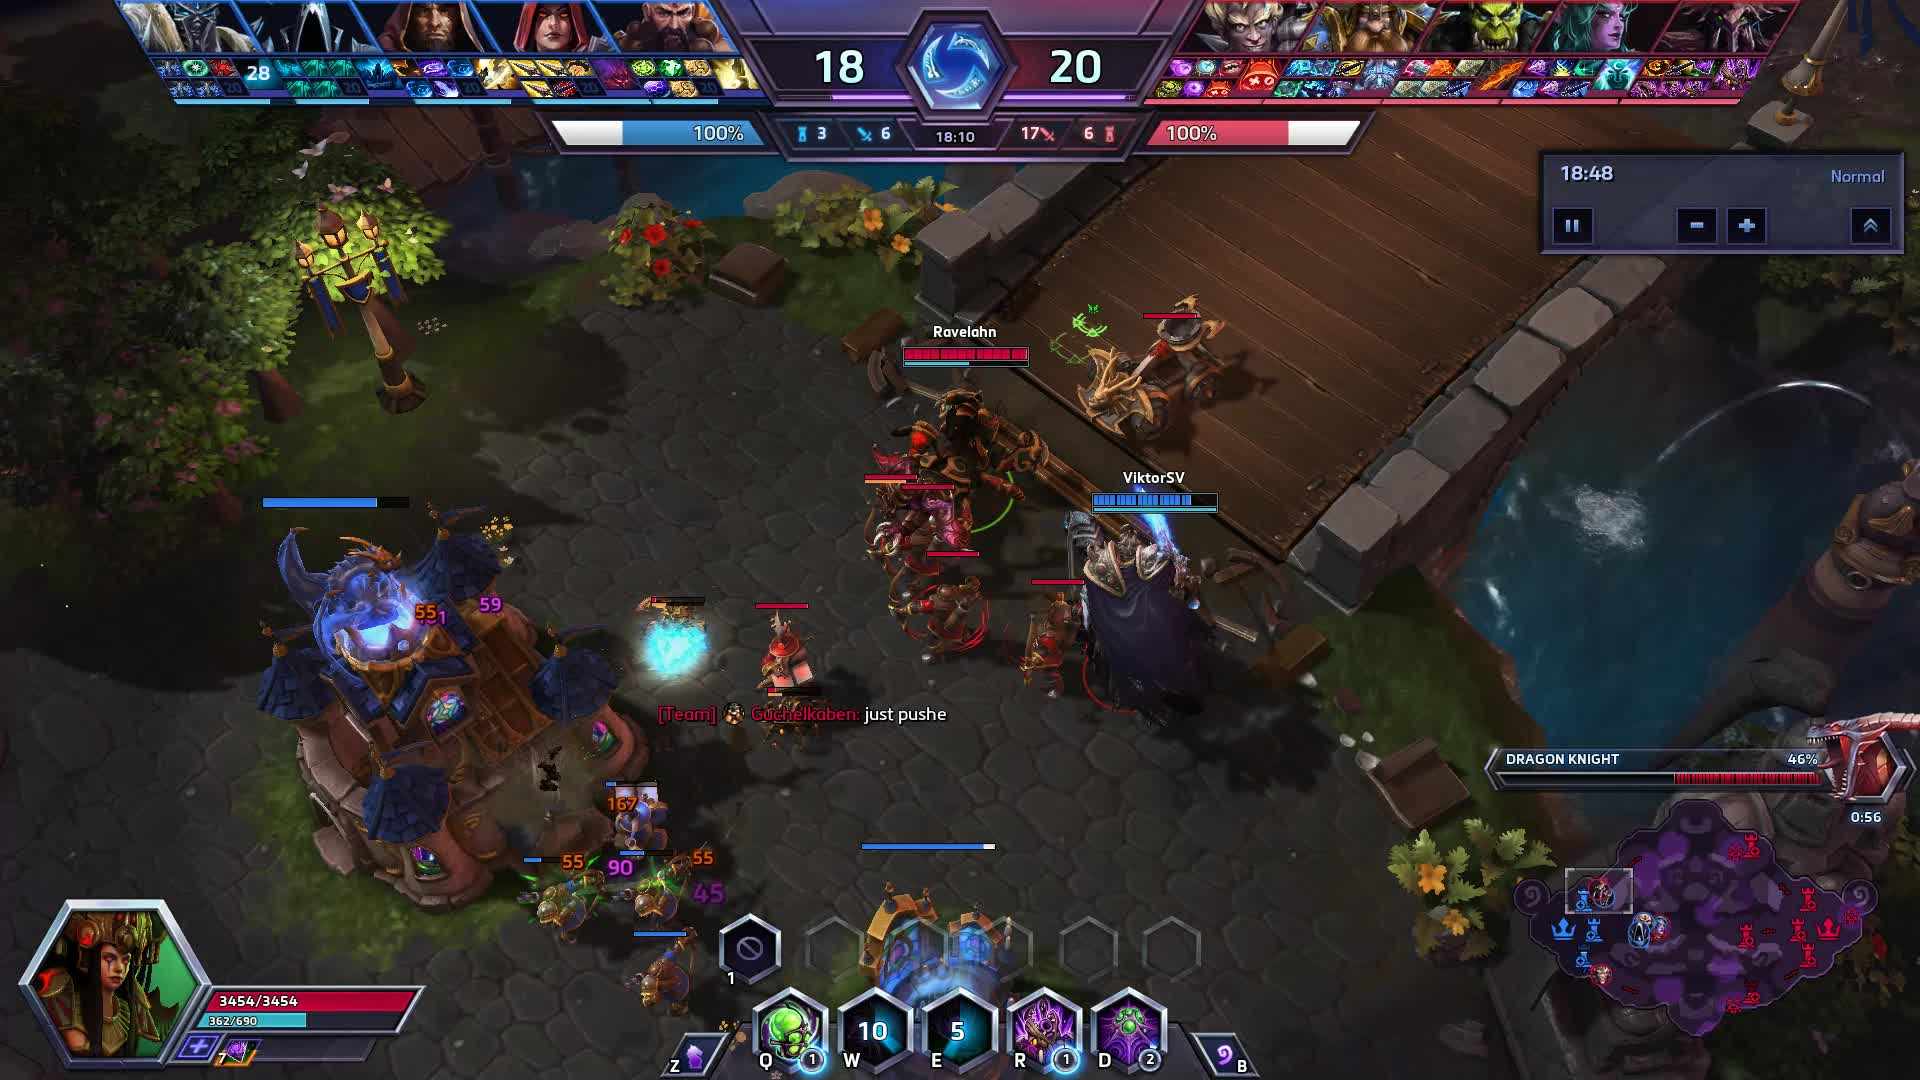 heroesofthestorm, Heroes of the Storm 2019.04.19 - 18.00.49.03 GIFs